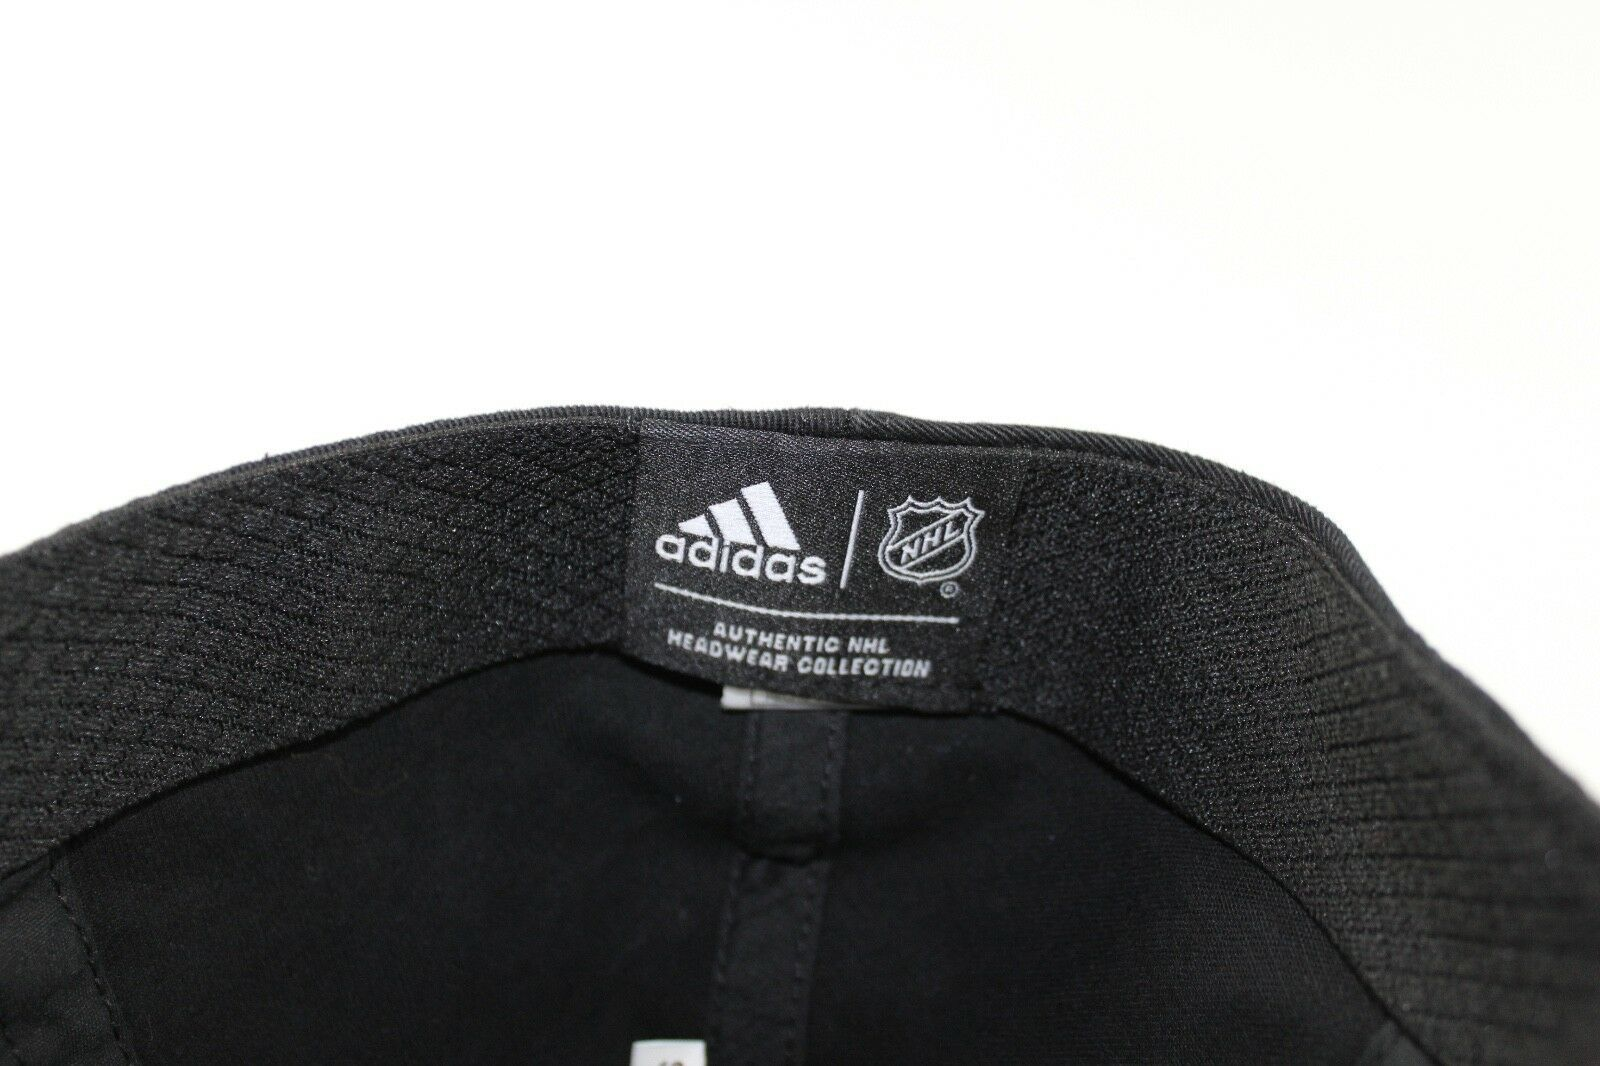 New Sample ADIDAS Pittsburgh Penguins Hockey S/M Fitted Cotton Dad Hat Cap Black